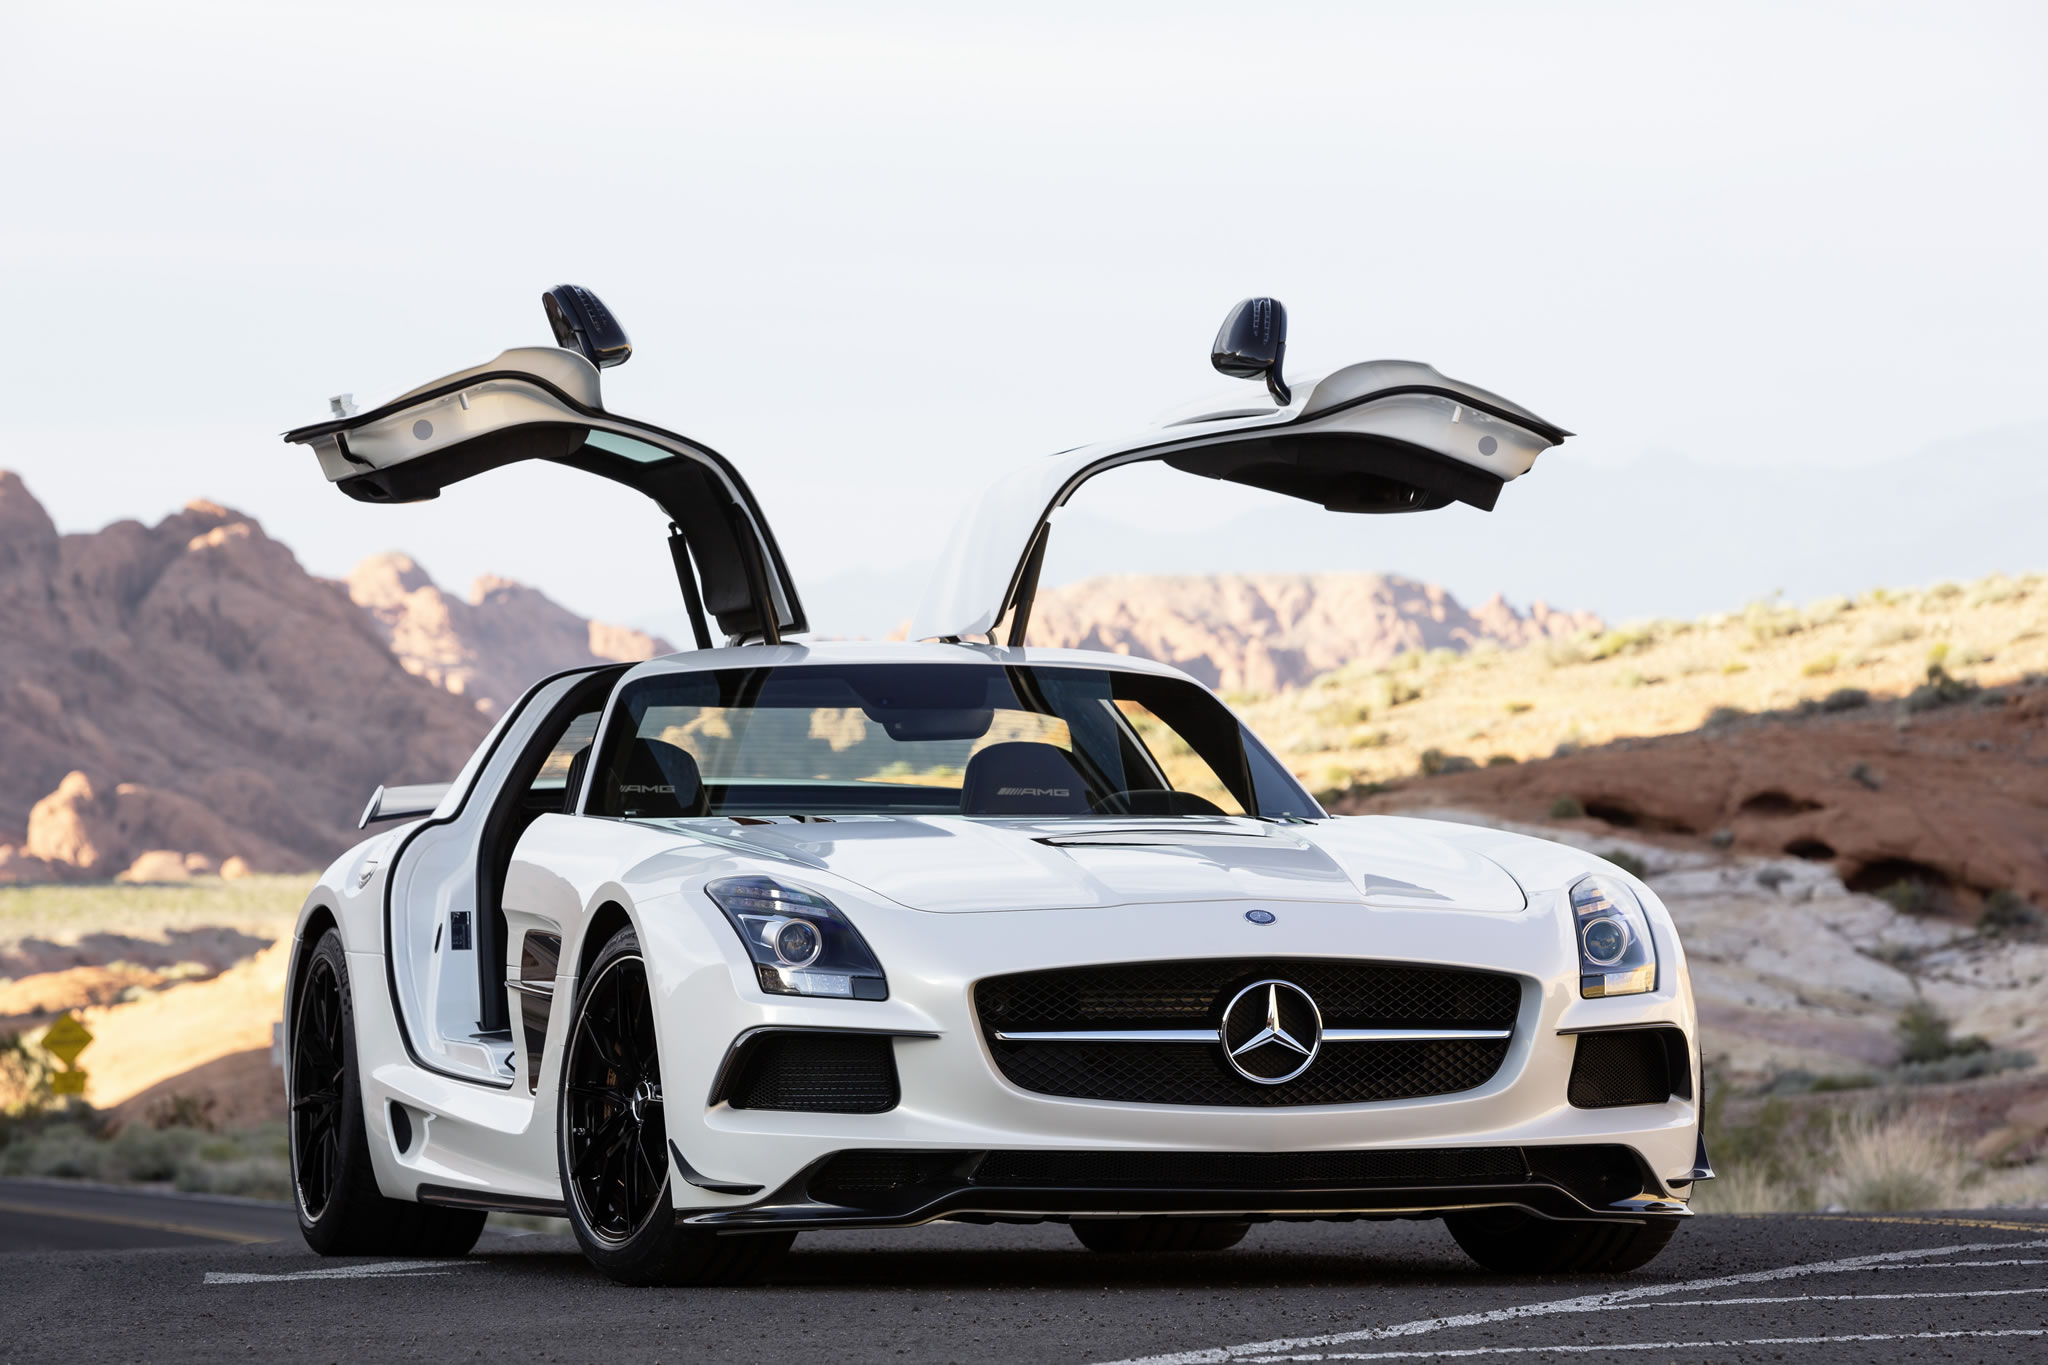 2014 mercedes benz sls amg black series front photo designo mystic white ii color gullwing. Black Bedroom Furniture Sets. Home Design Ideas